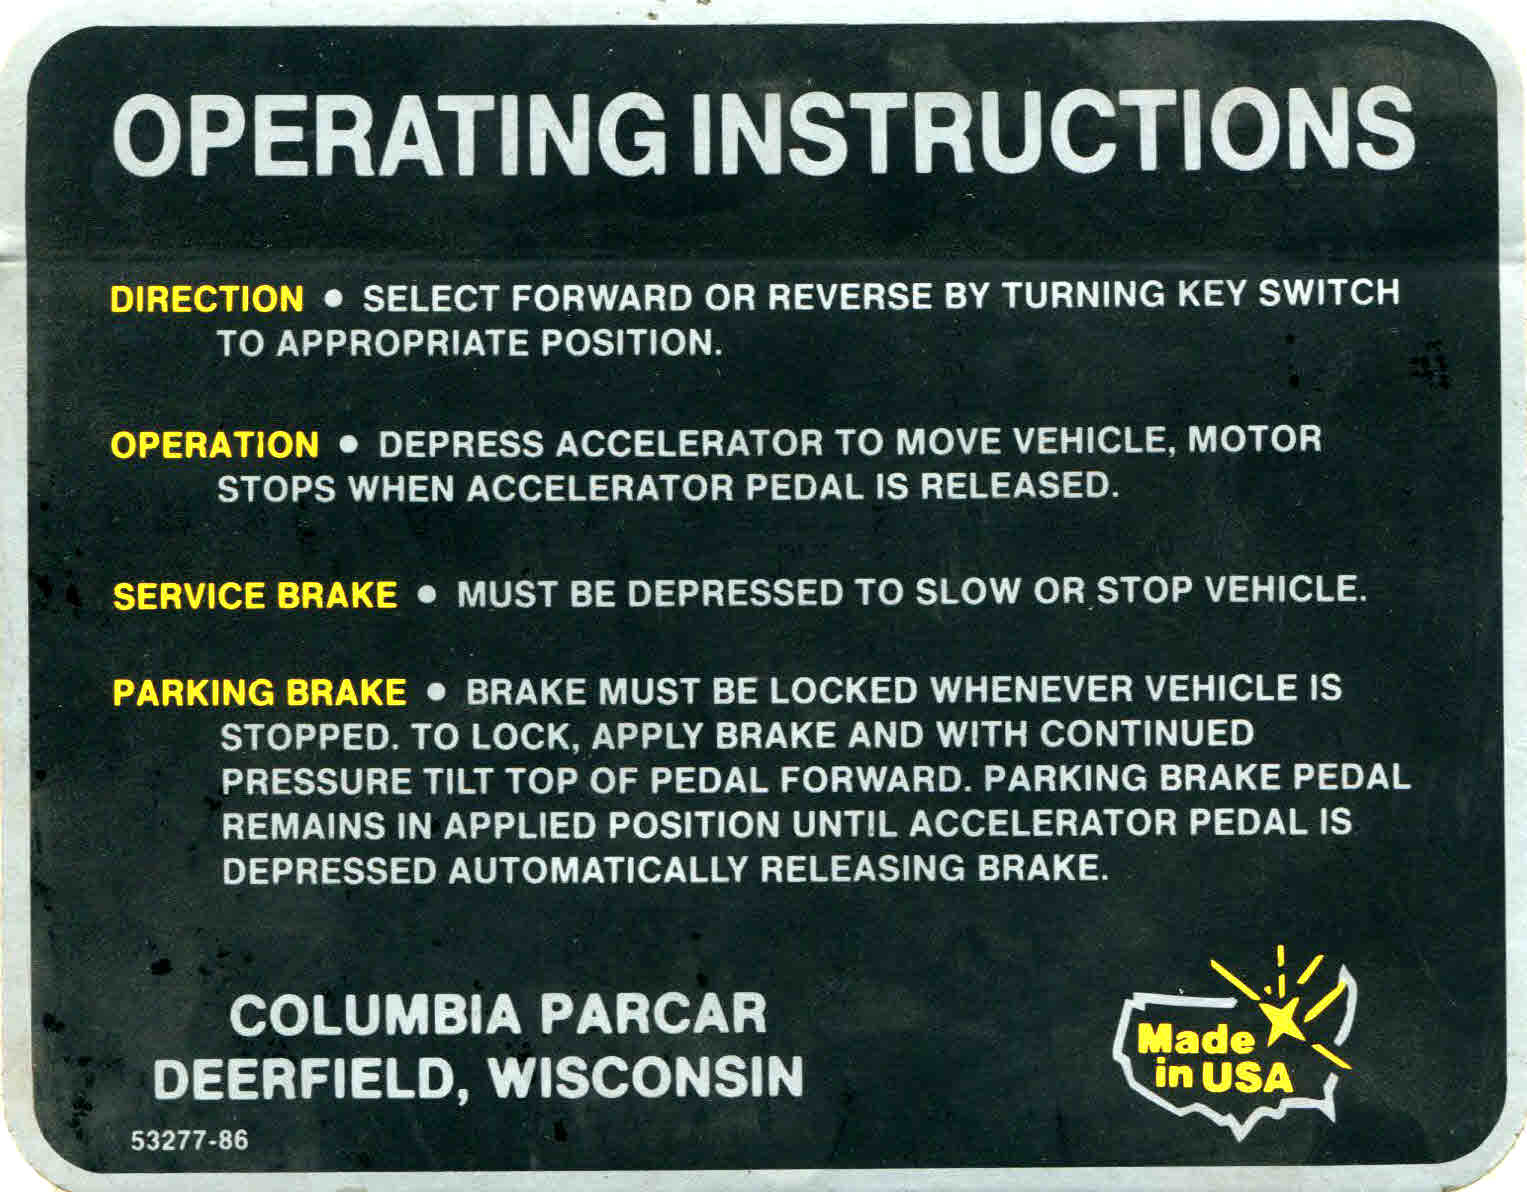 BD11-756 - Operating Instruction Decal